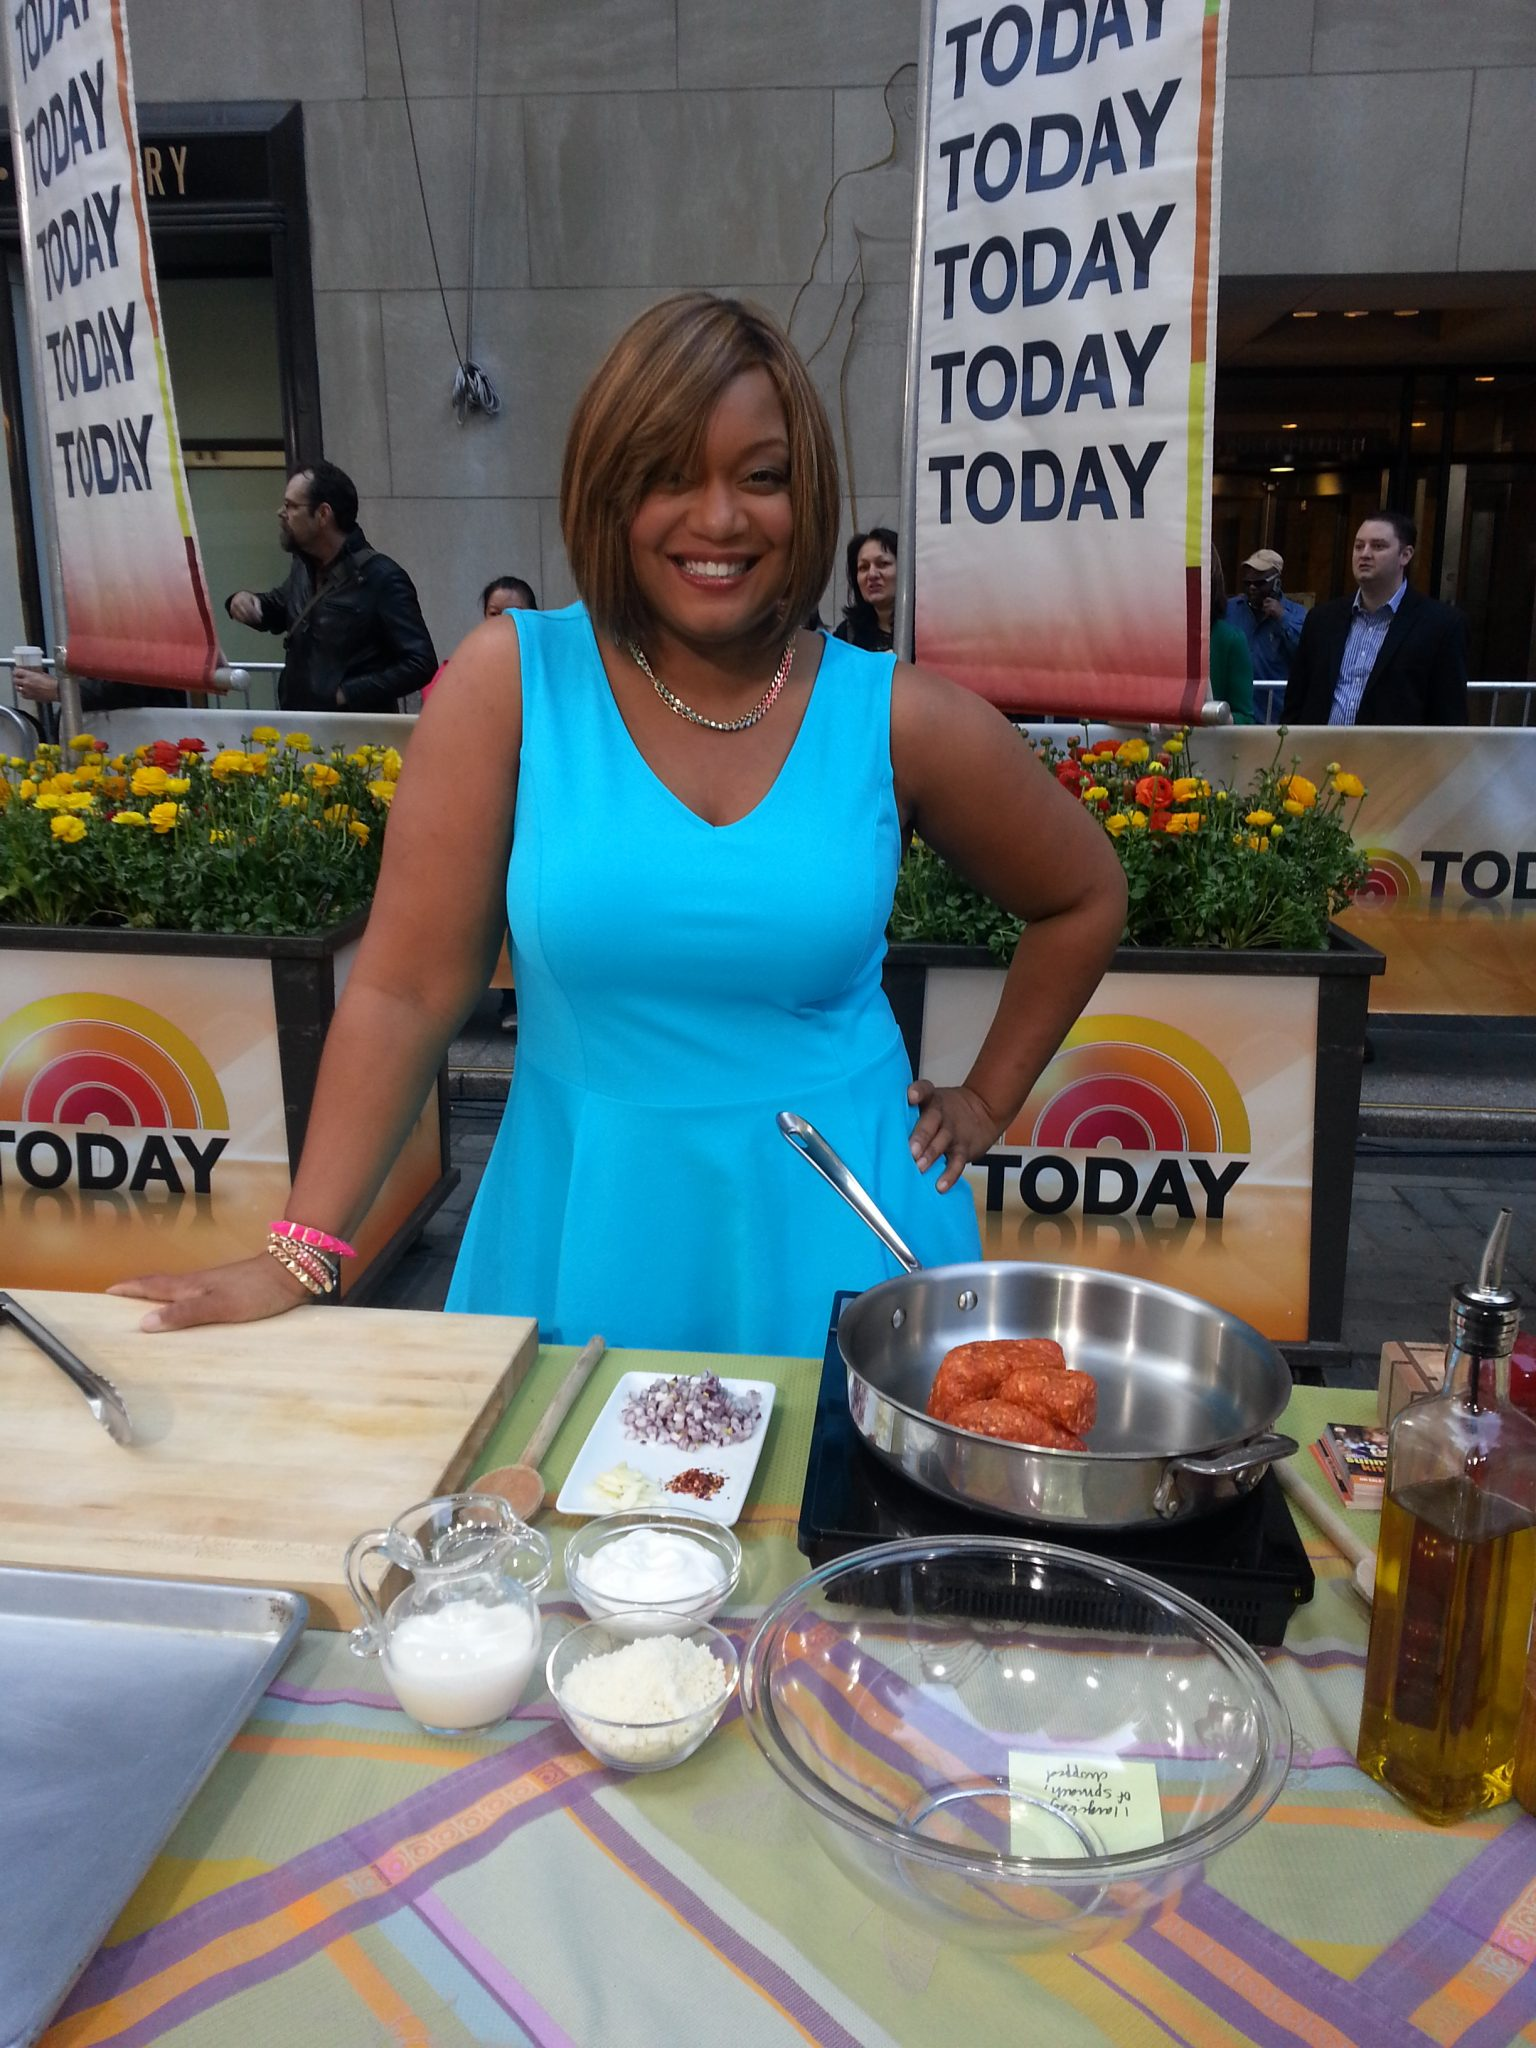 Watch Sunny grill up spring fun and remember the 80's on The Today Show!